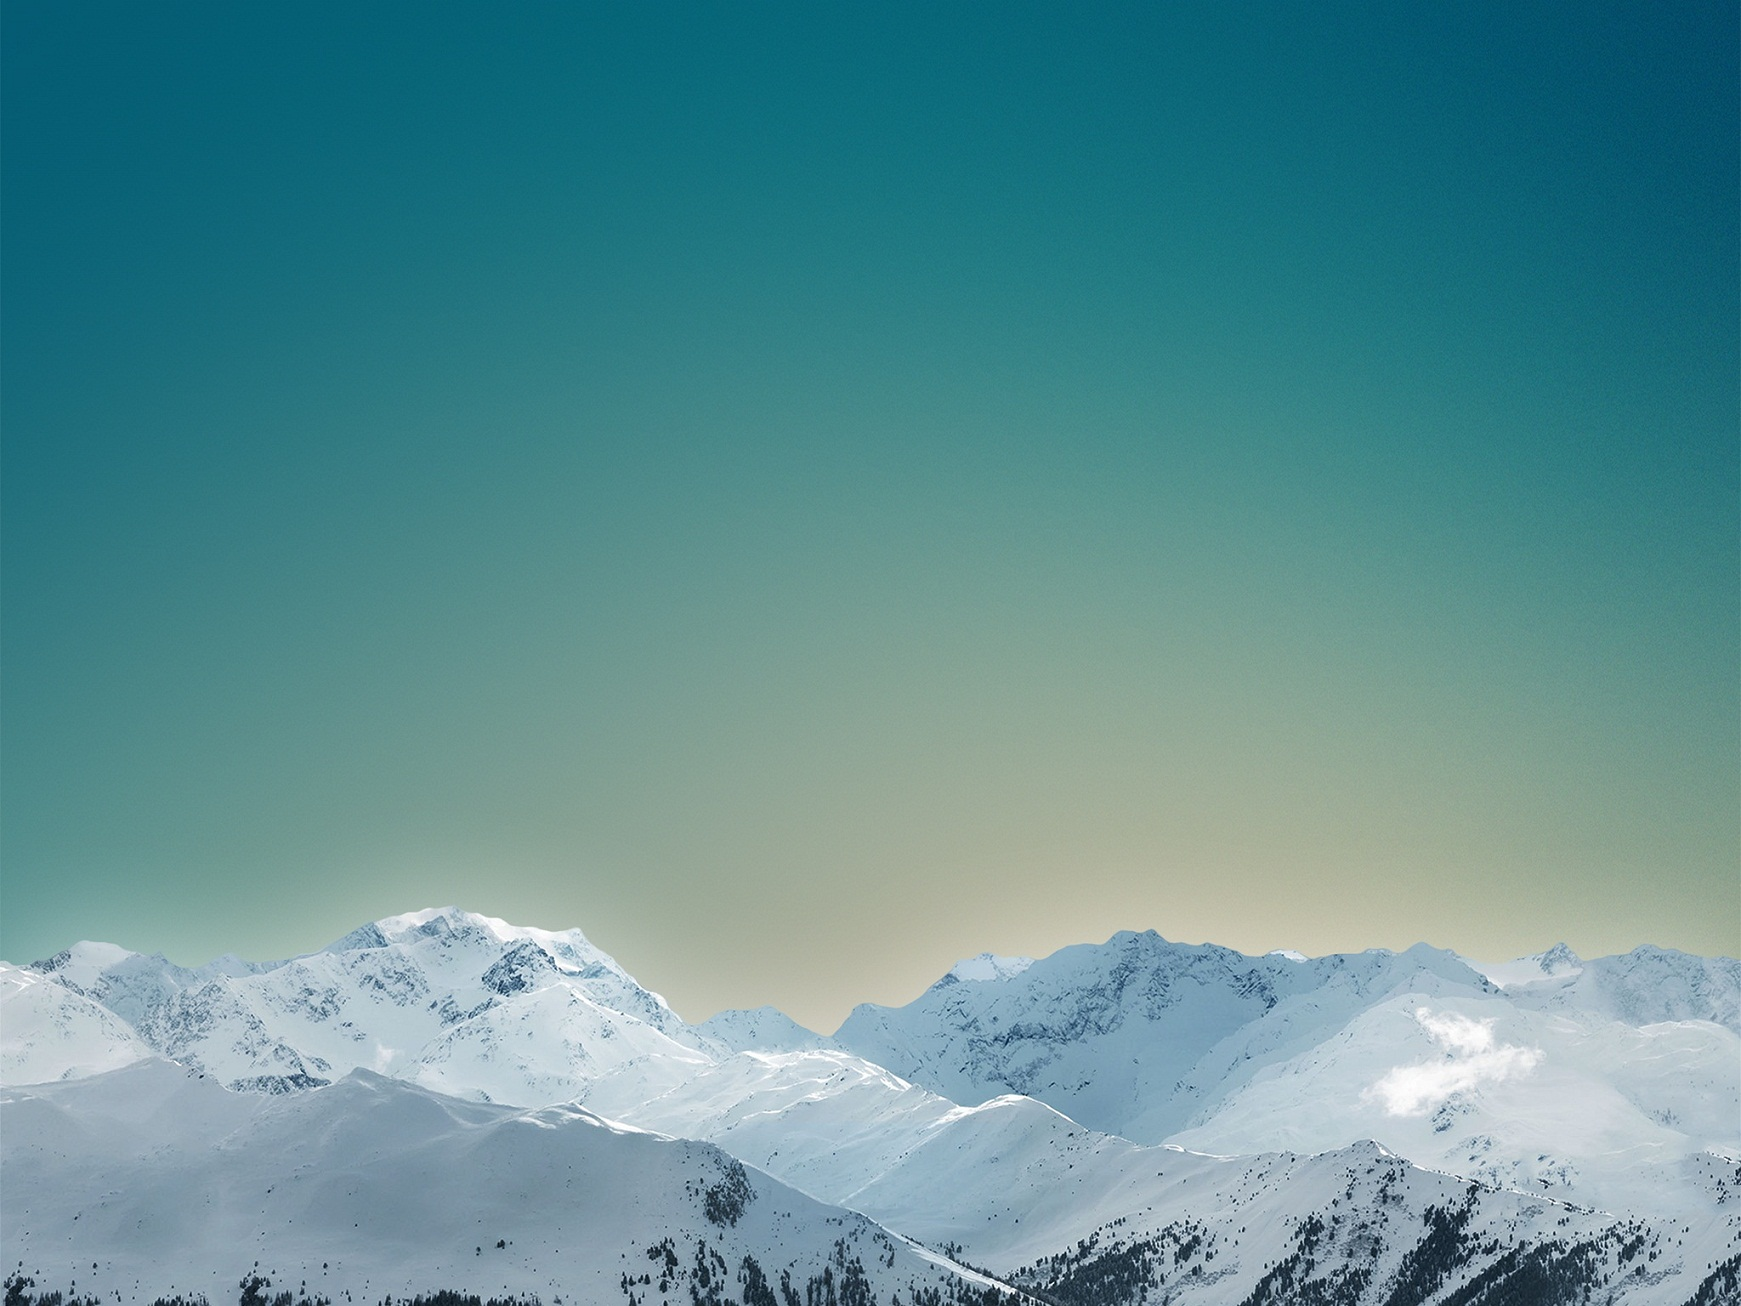 37 Ios 8 Mountain Wallpaper On Wallpapersafari